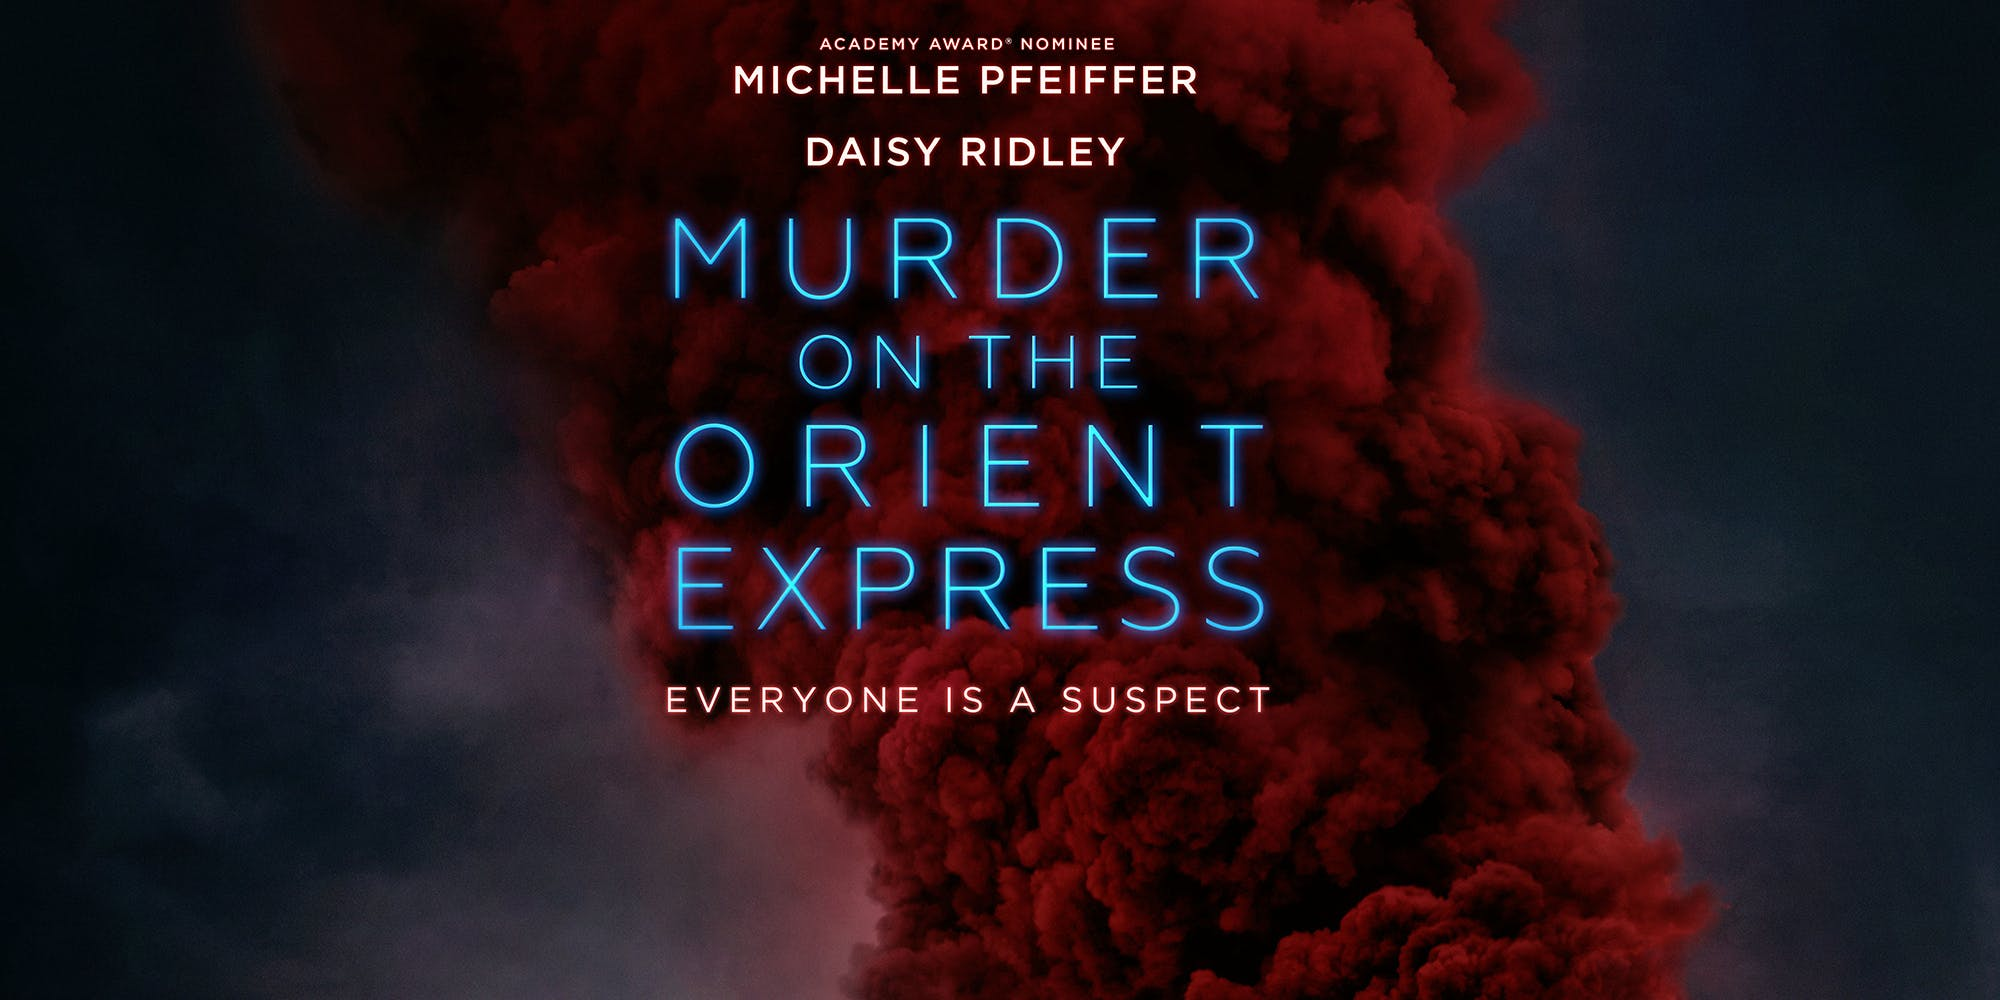 murder on the orient express poster header